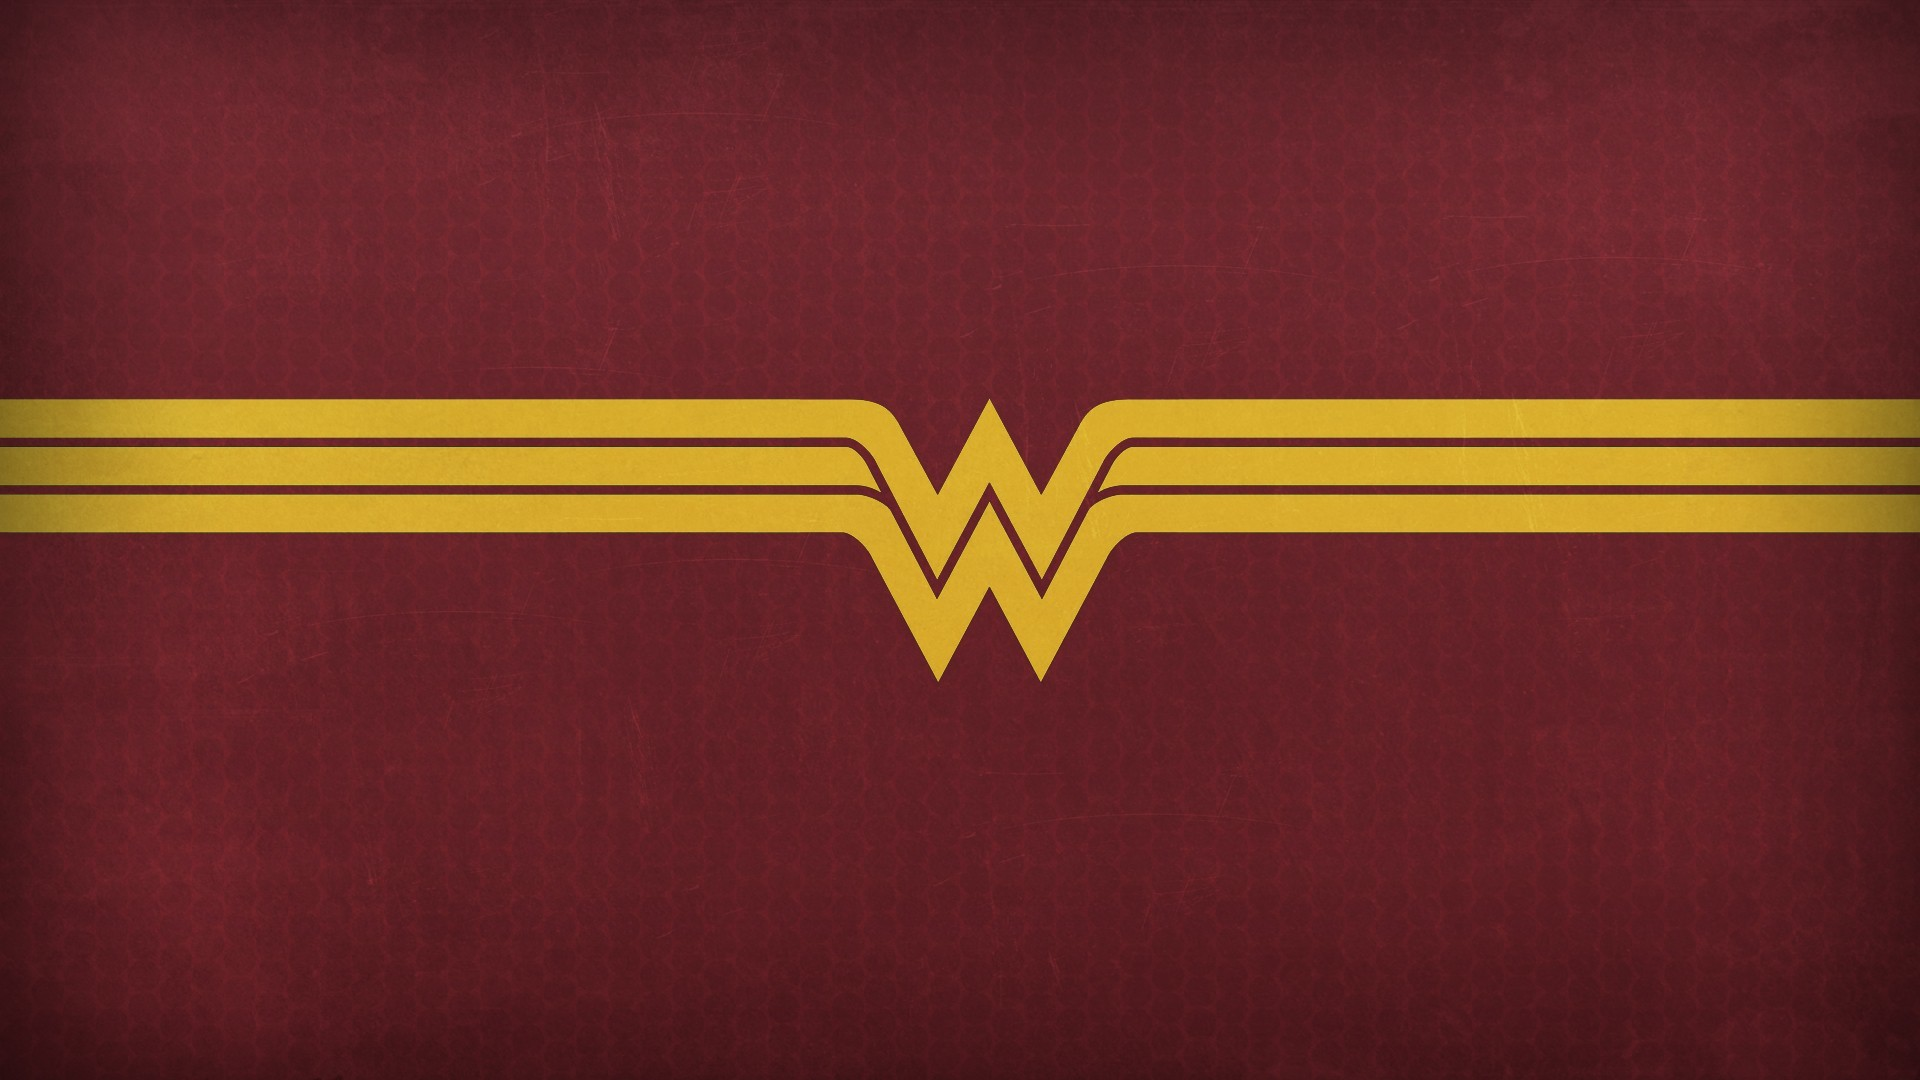 Wonder Woman Logo Wallpaper Pictures to Pin on Pinterest – PinsDaddy